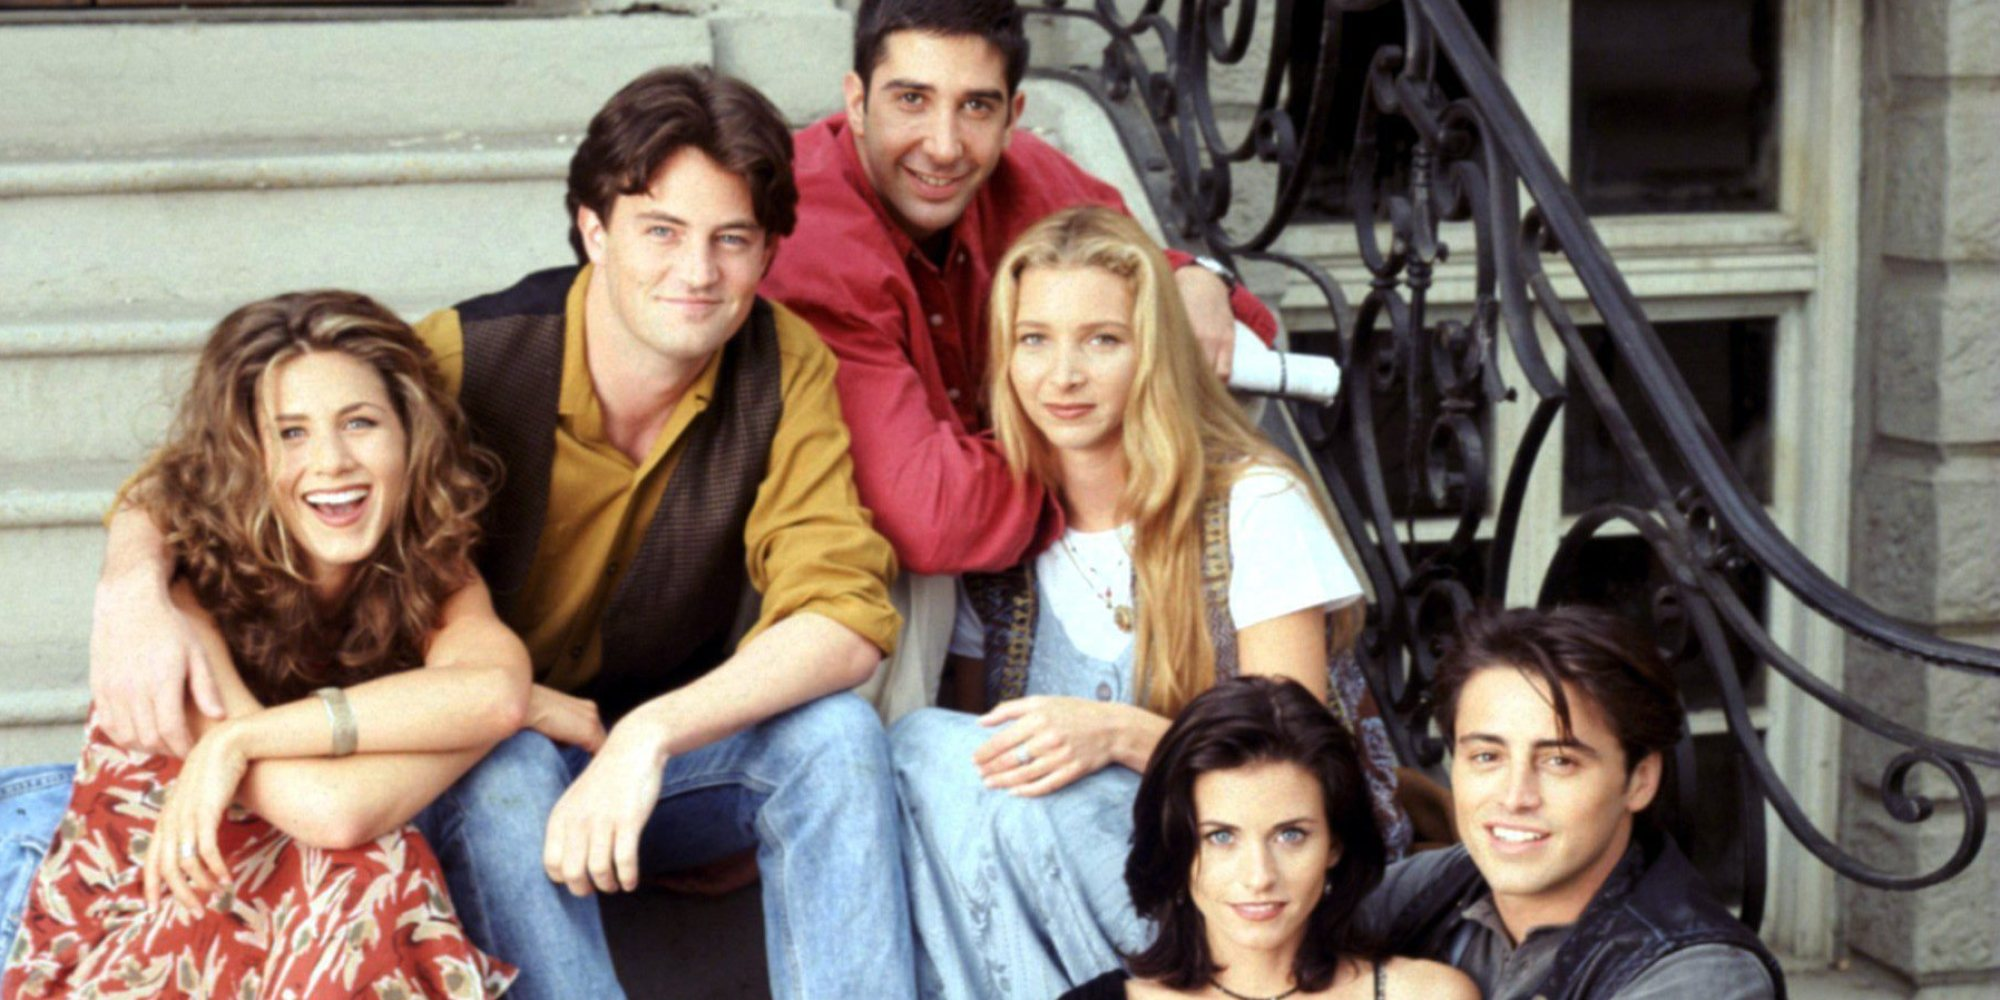 39 friends 39 turns 20 fashion lessons we learned from all 10 seasons. Black Bedroom Furniture Sets. Home Design Ideas